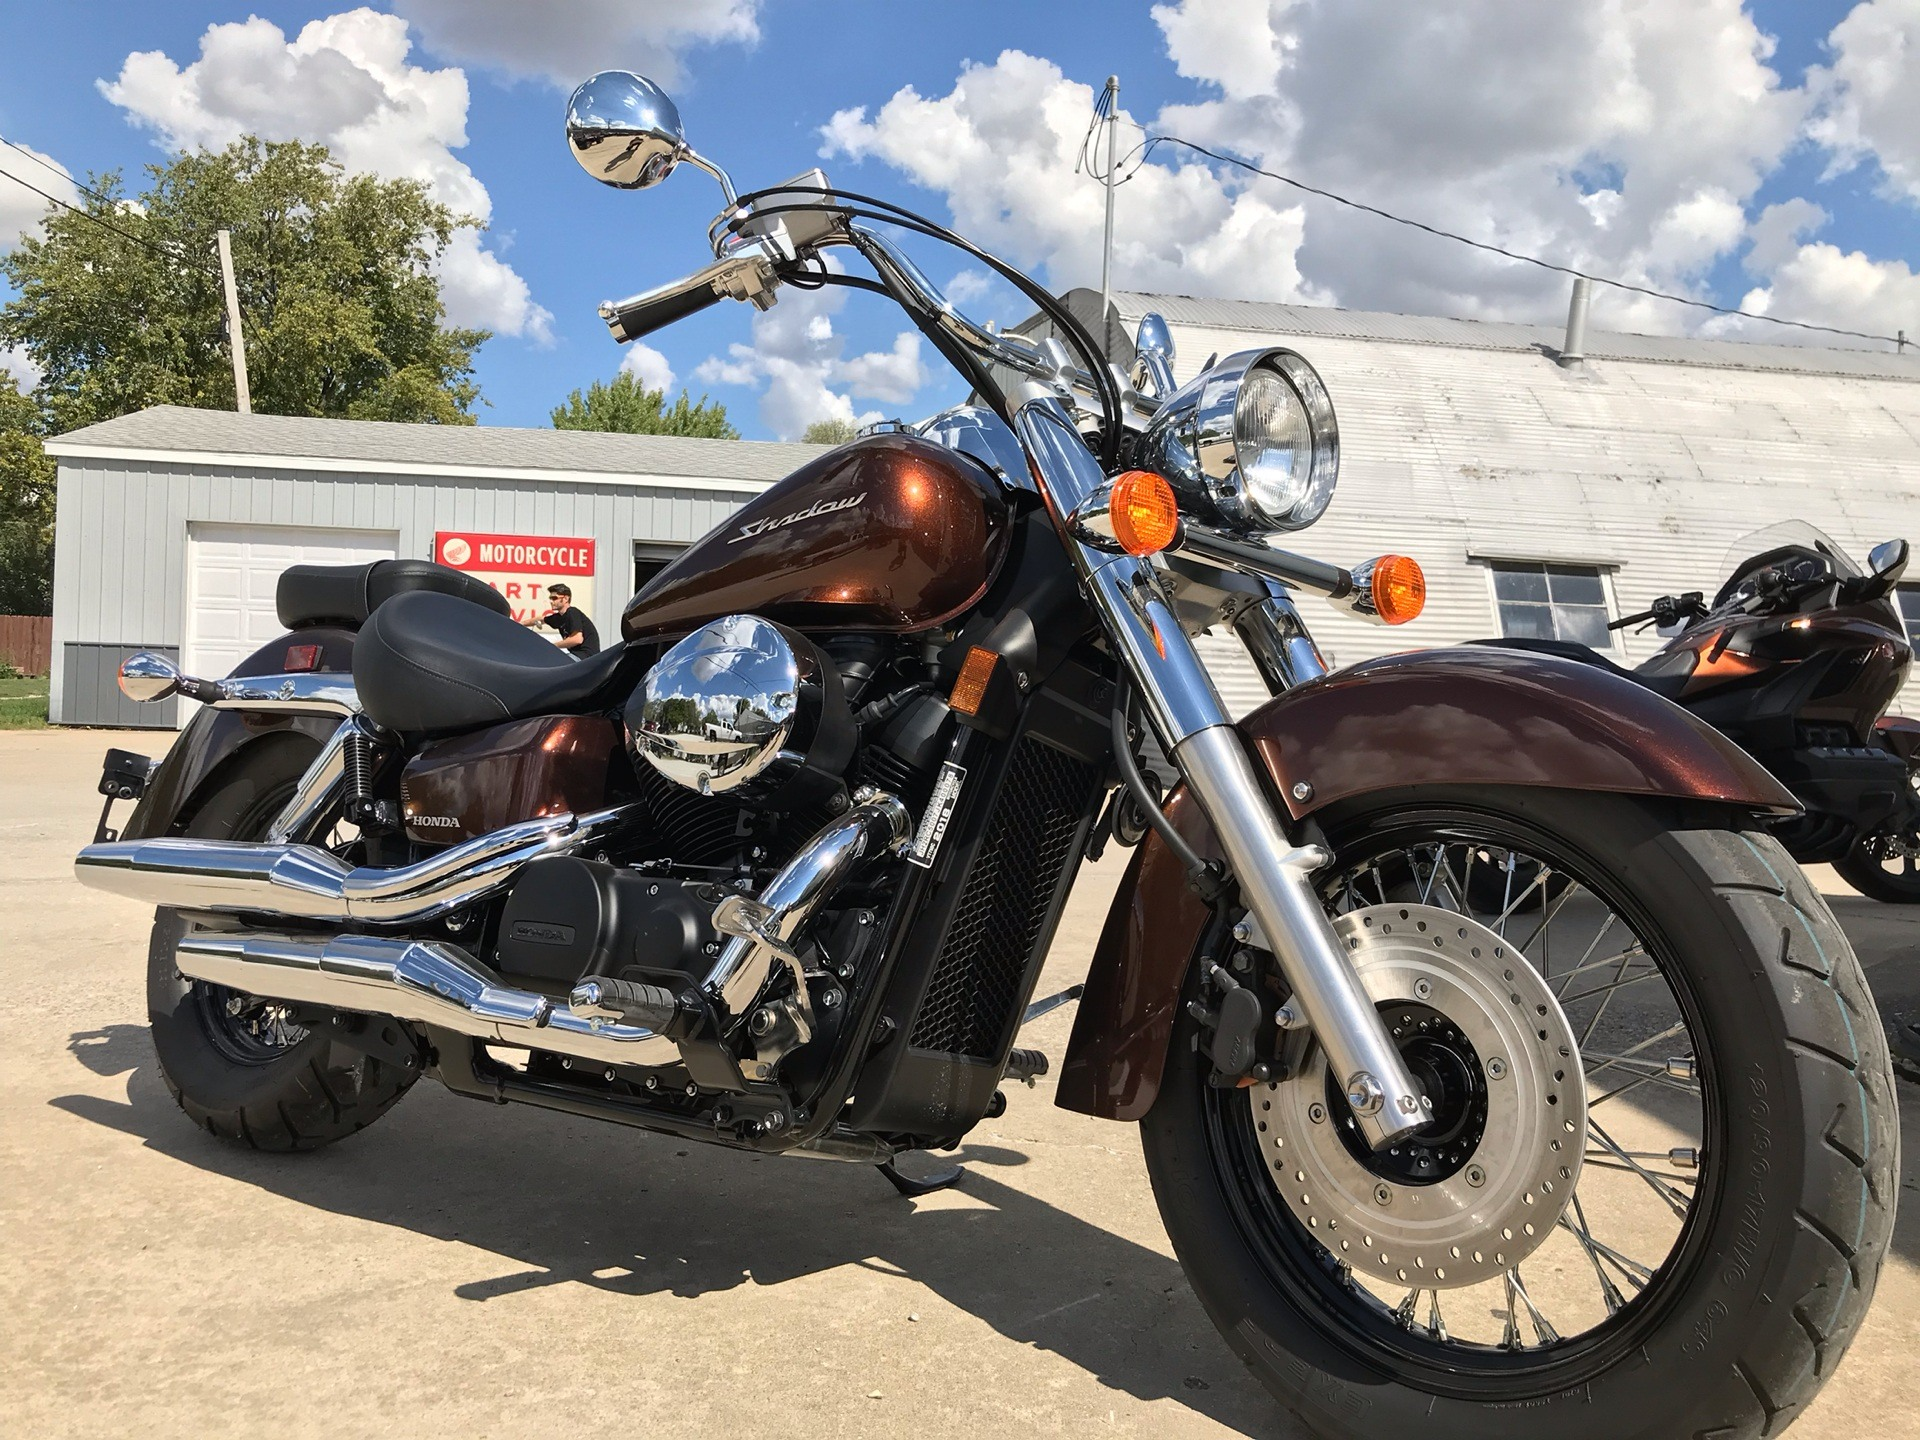 2018 Honda Shadow Aero 750 Motorcycles Watseka Illinois Na